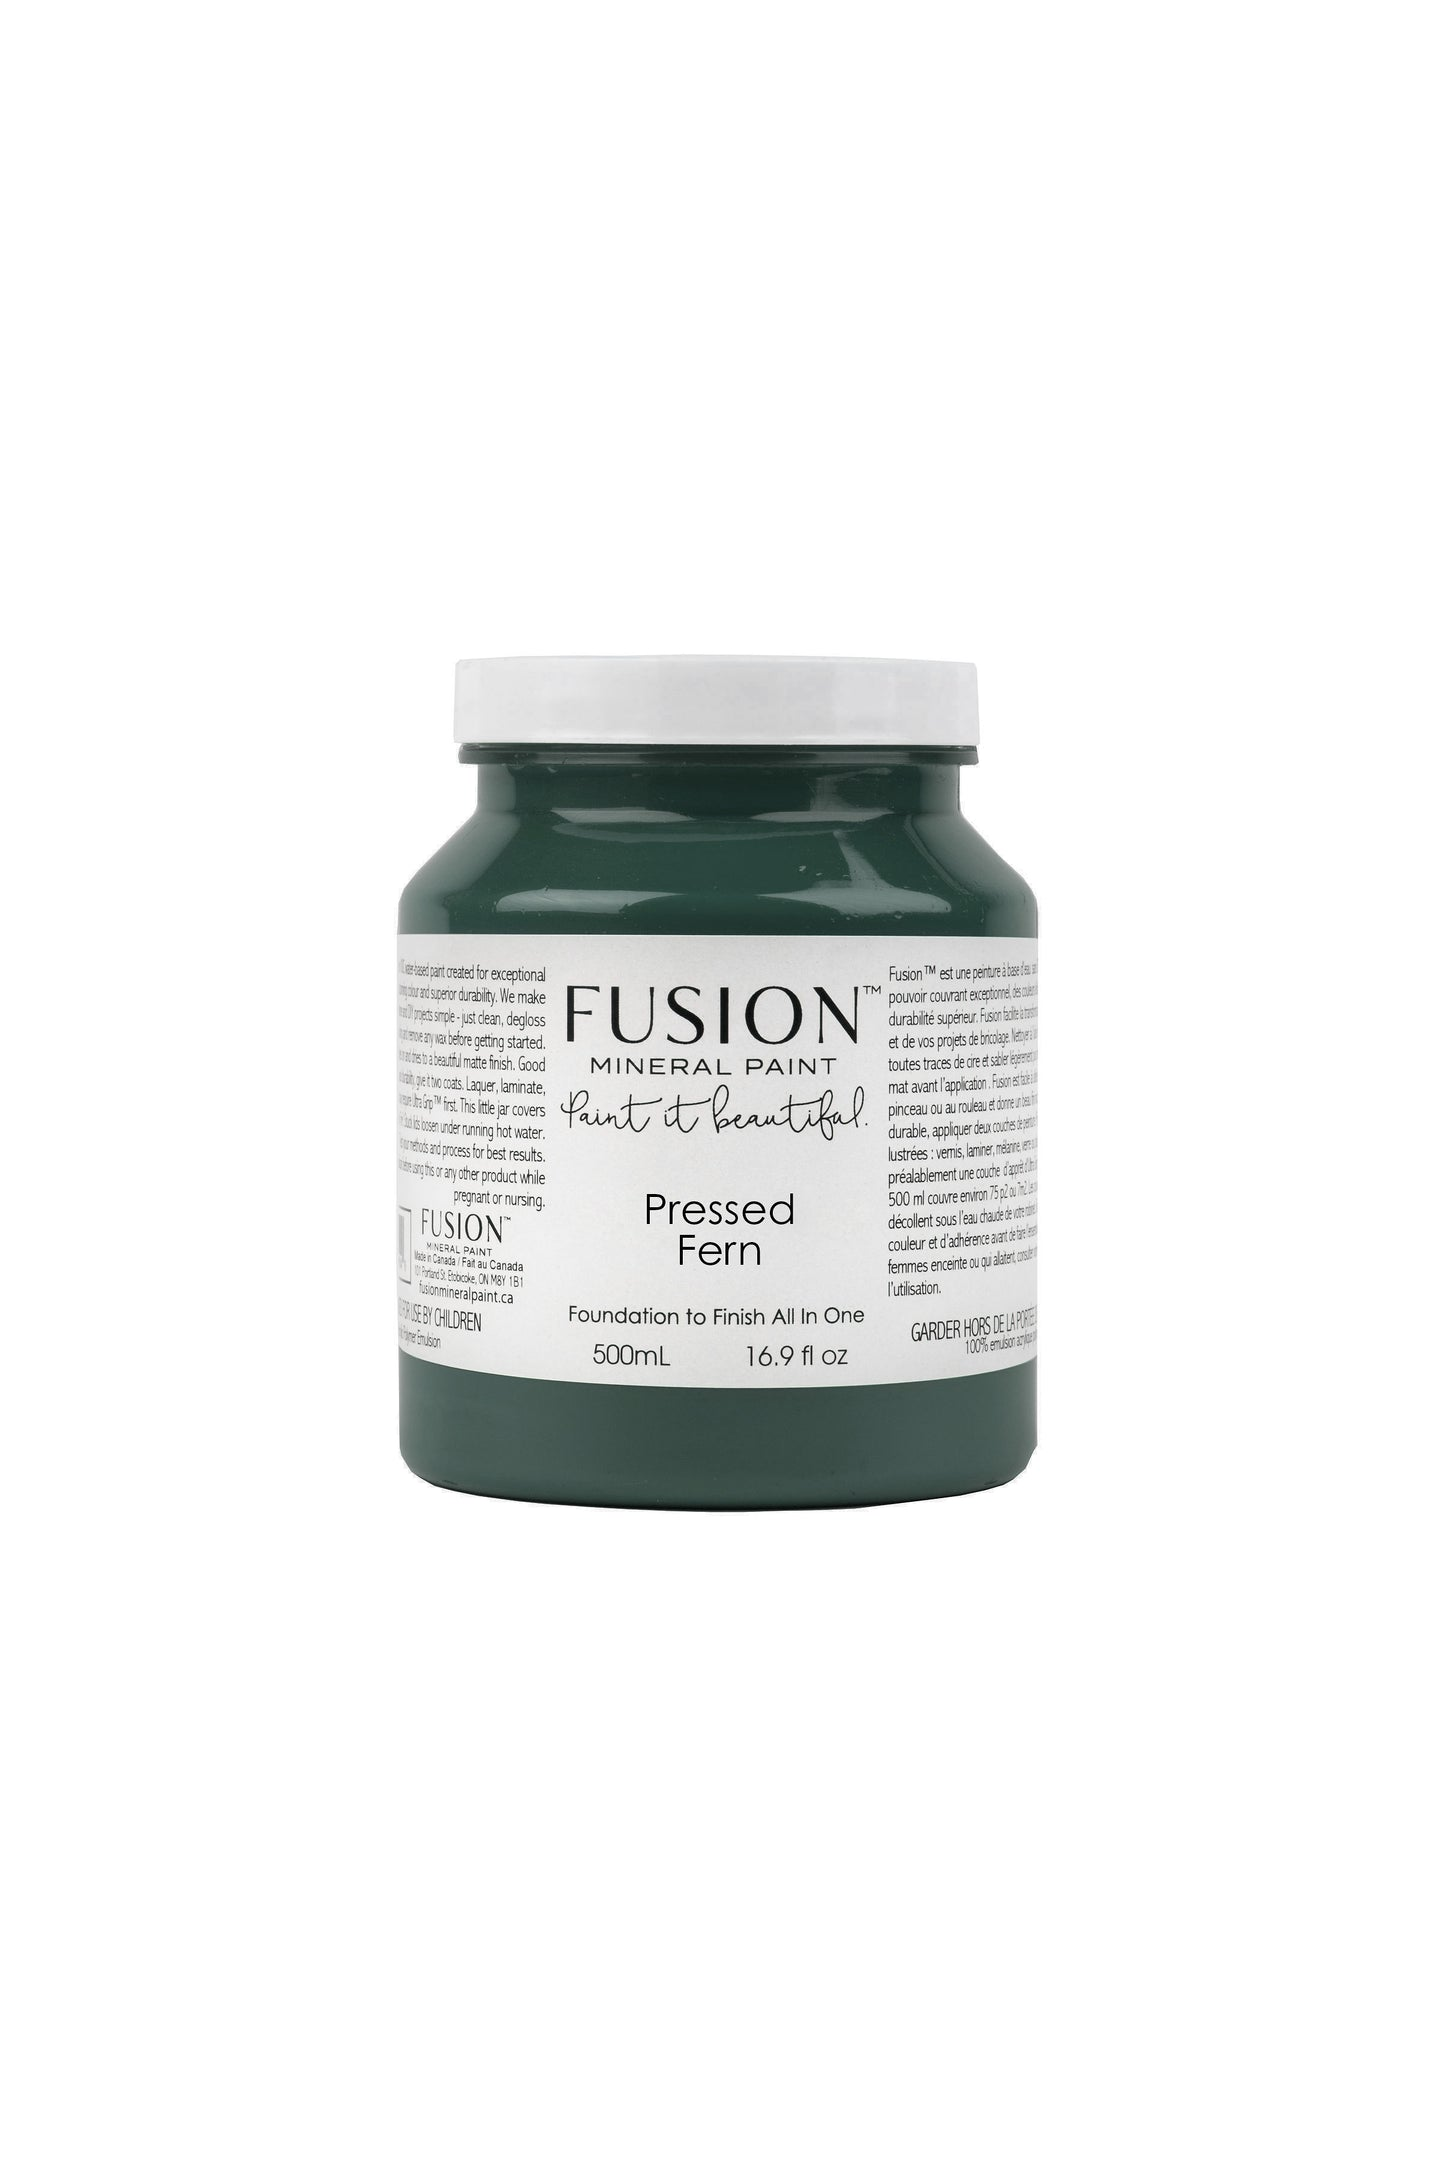 Pressed Fern FUSION Mineral Paint - Furniture Paint